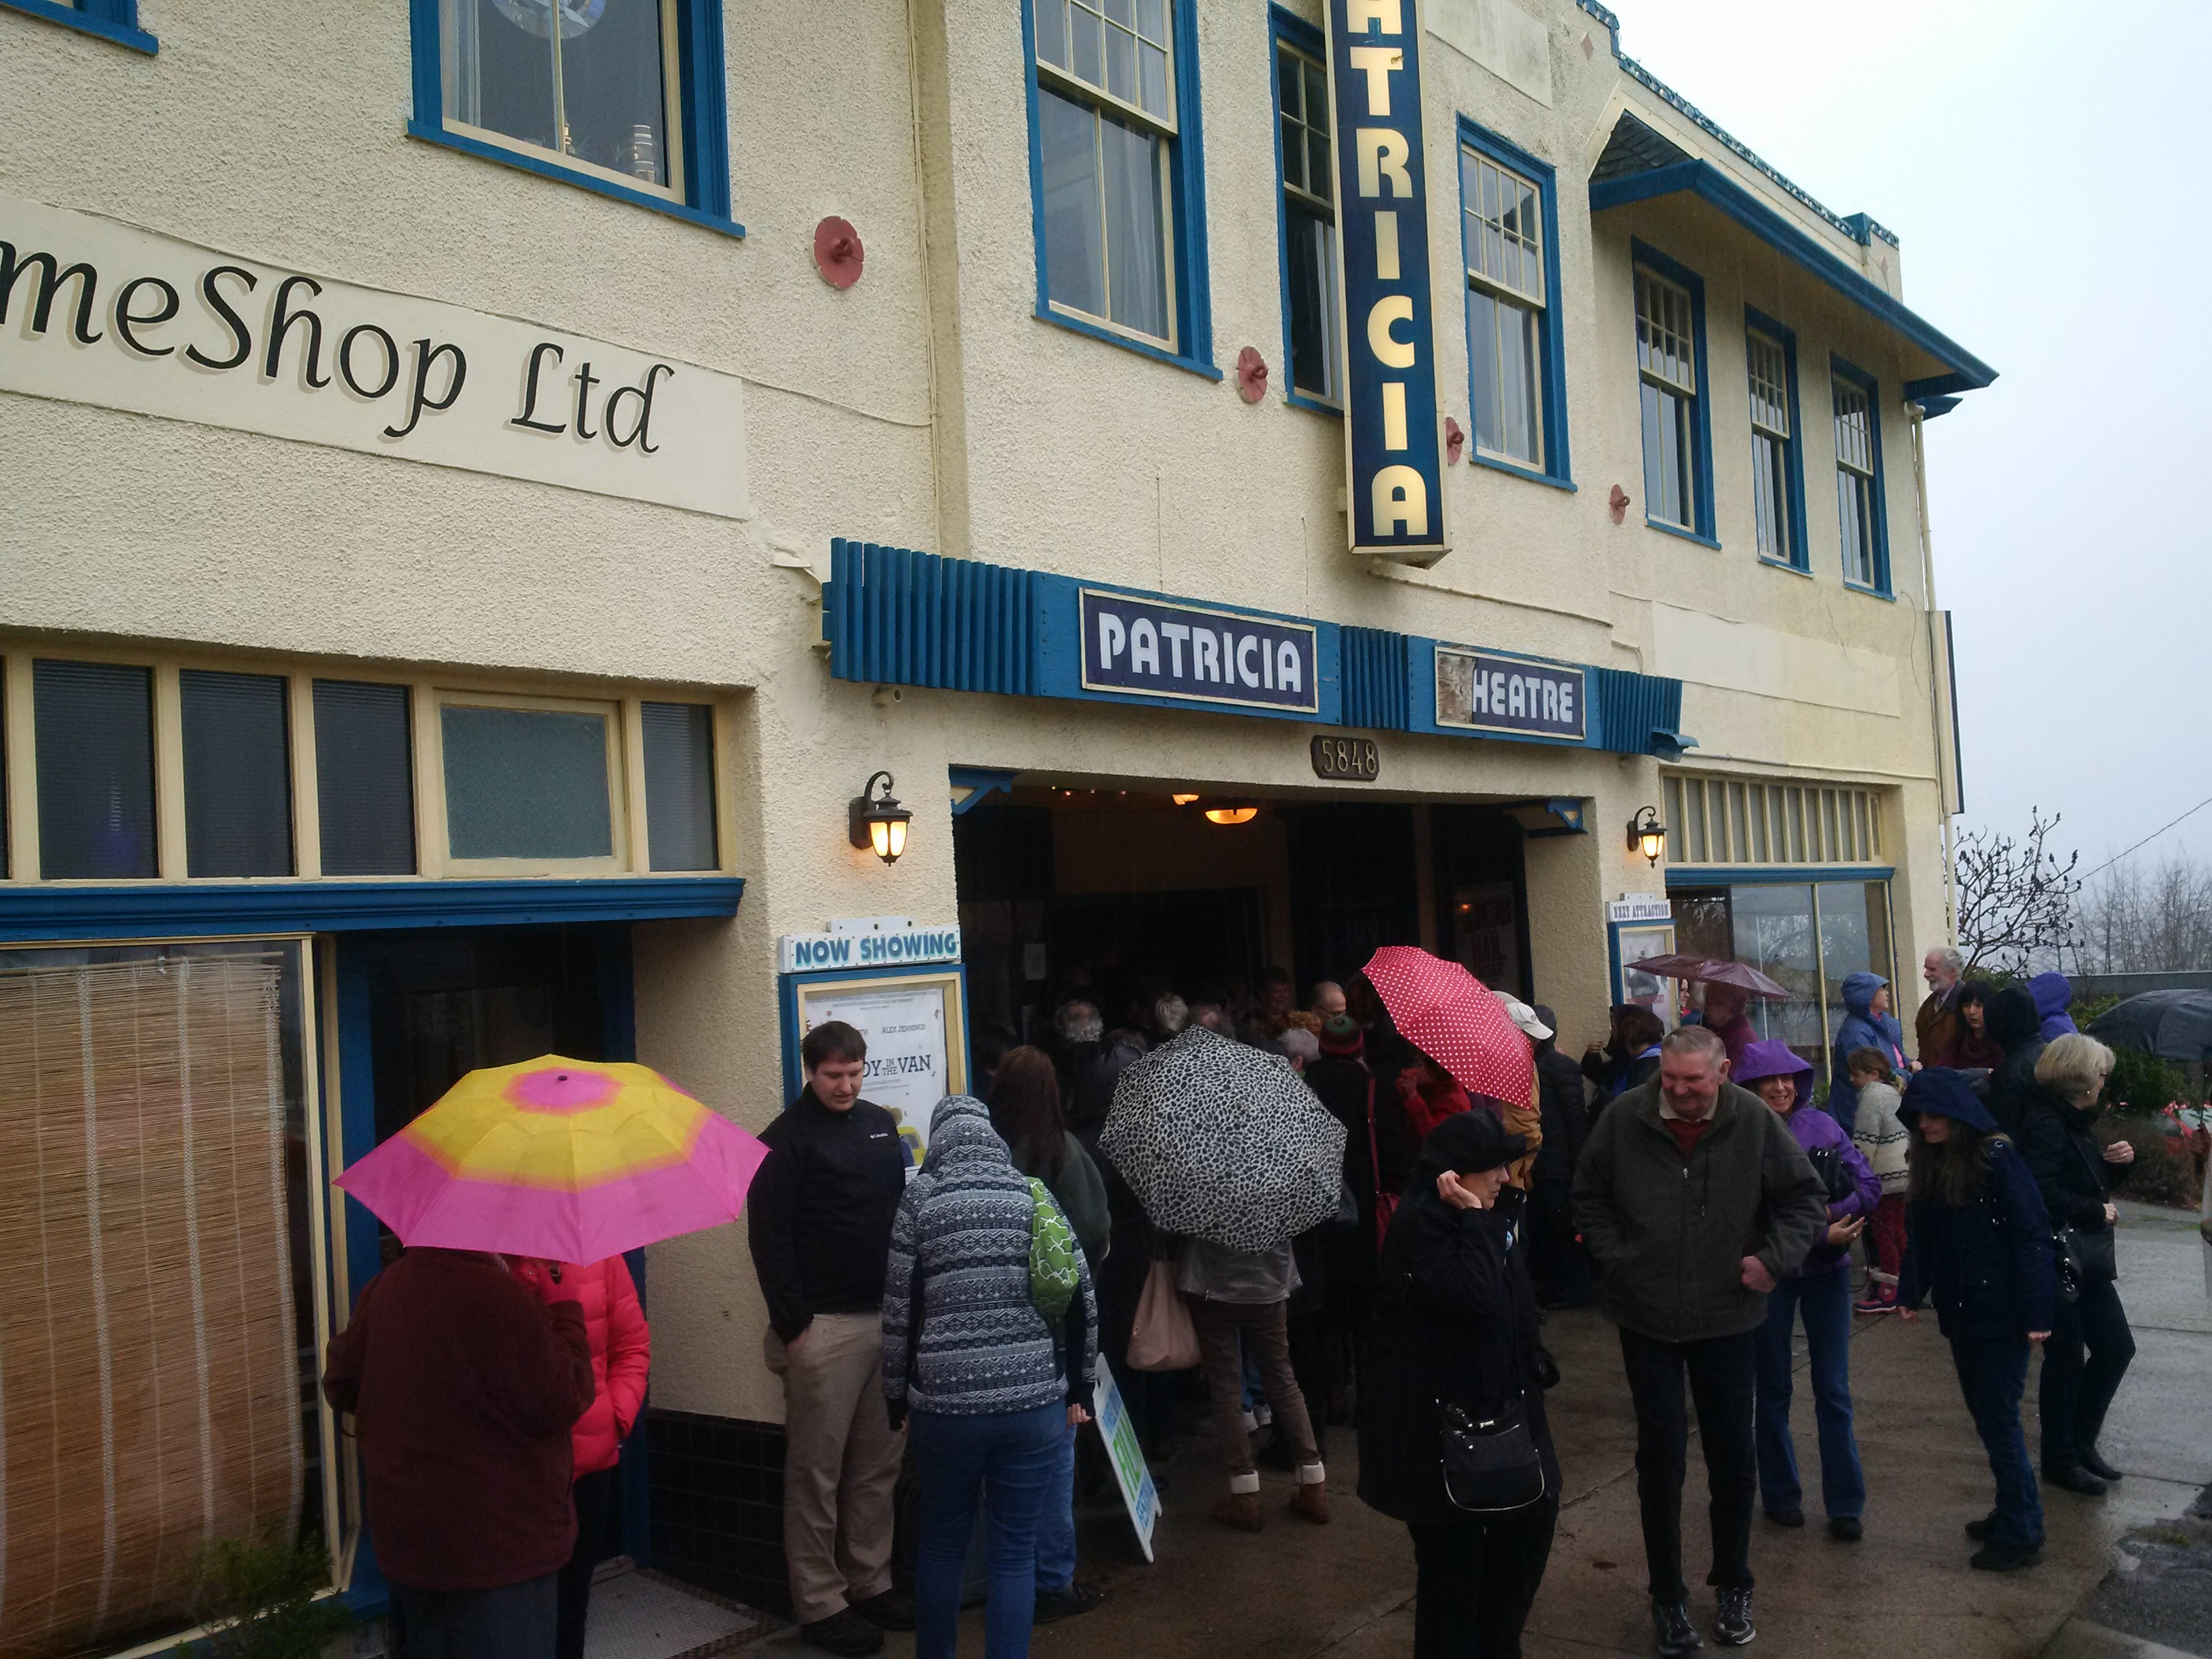 The umbrellas are out at the Powell River Film Festival.